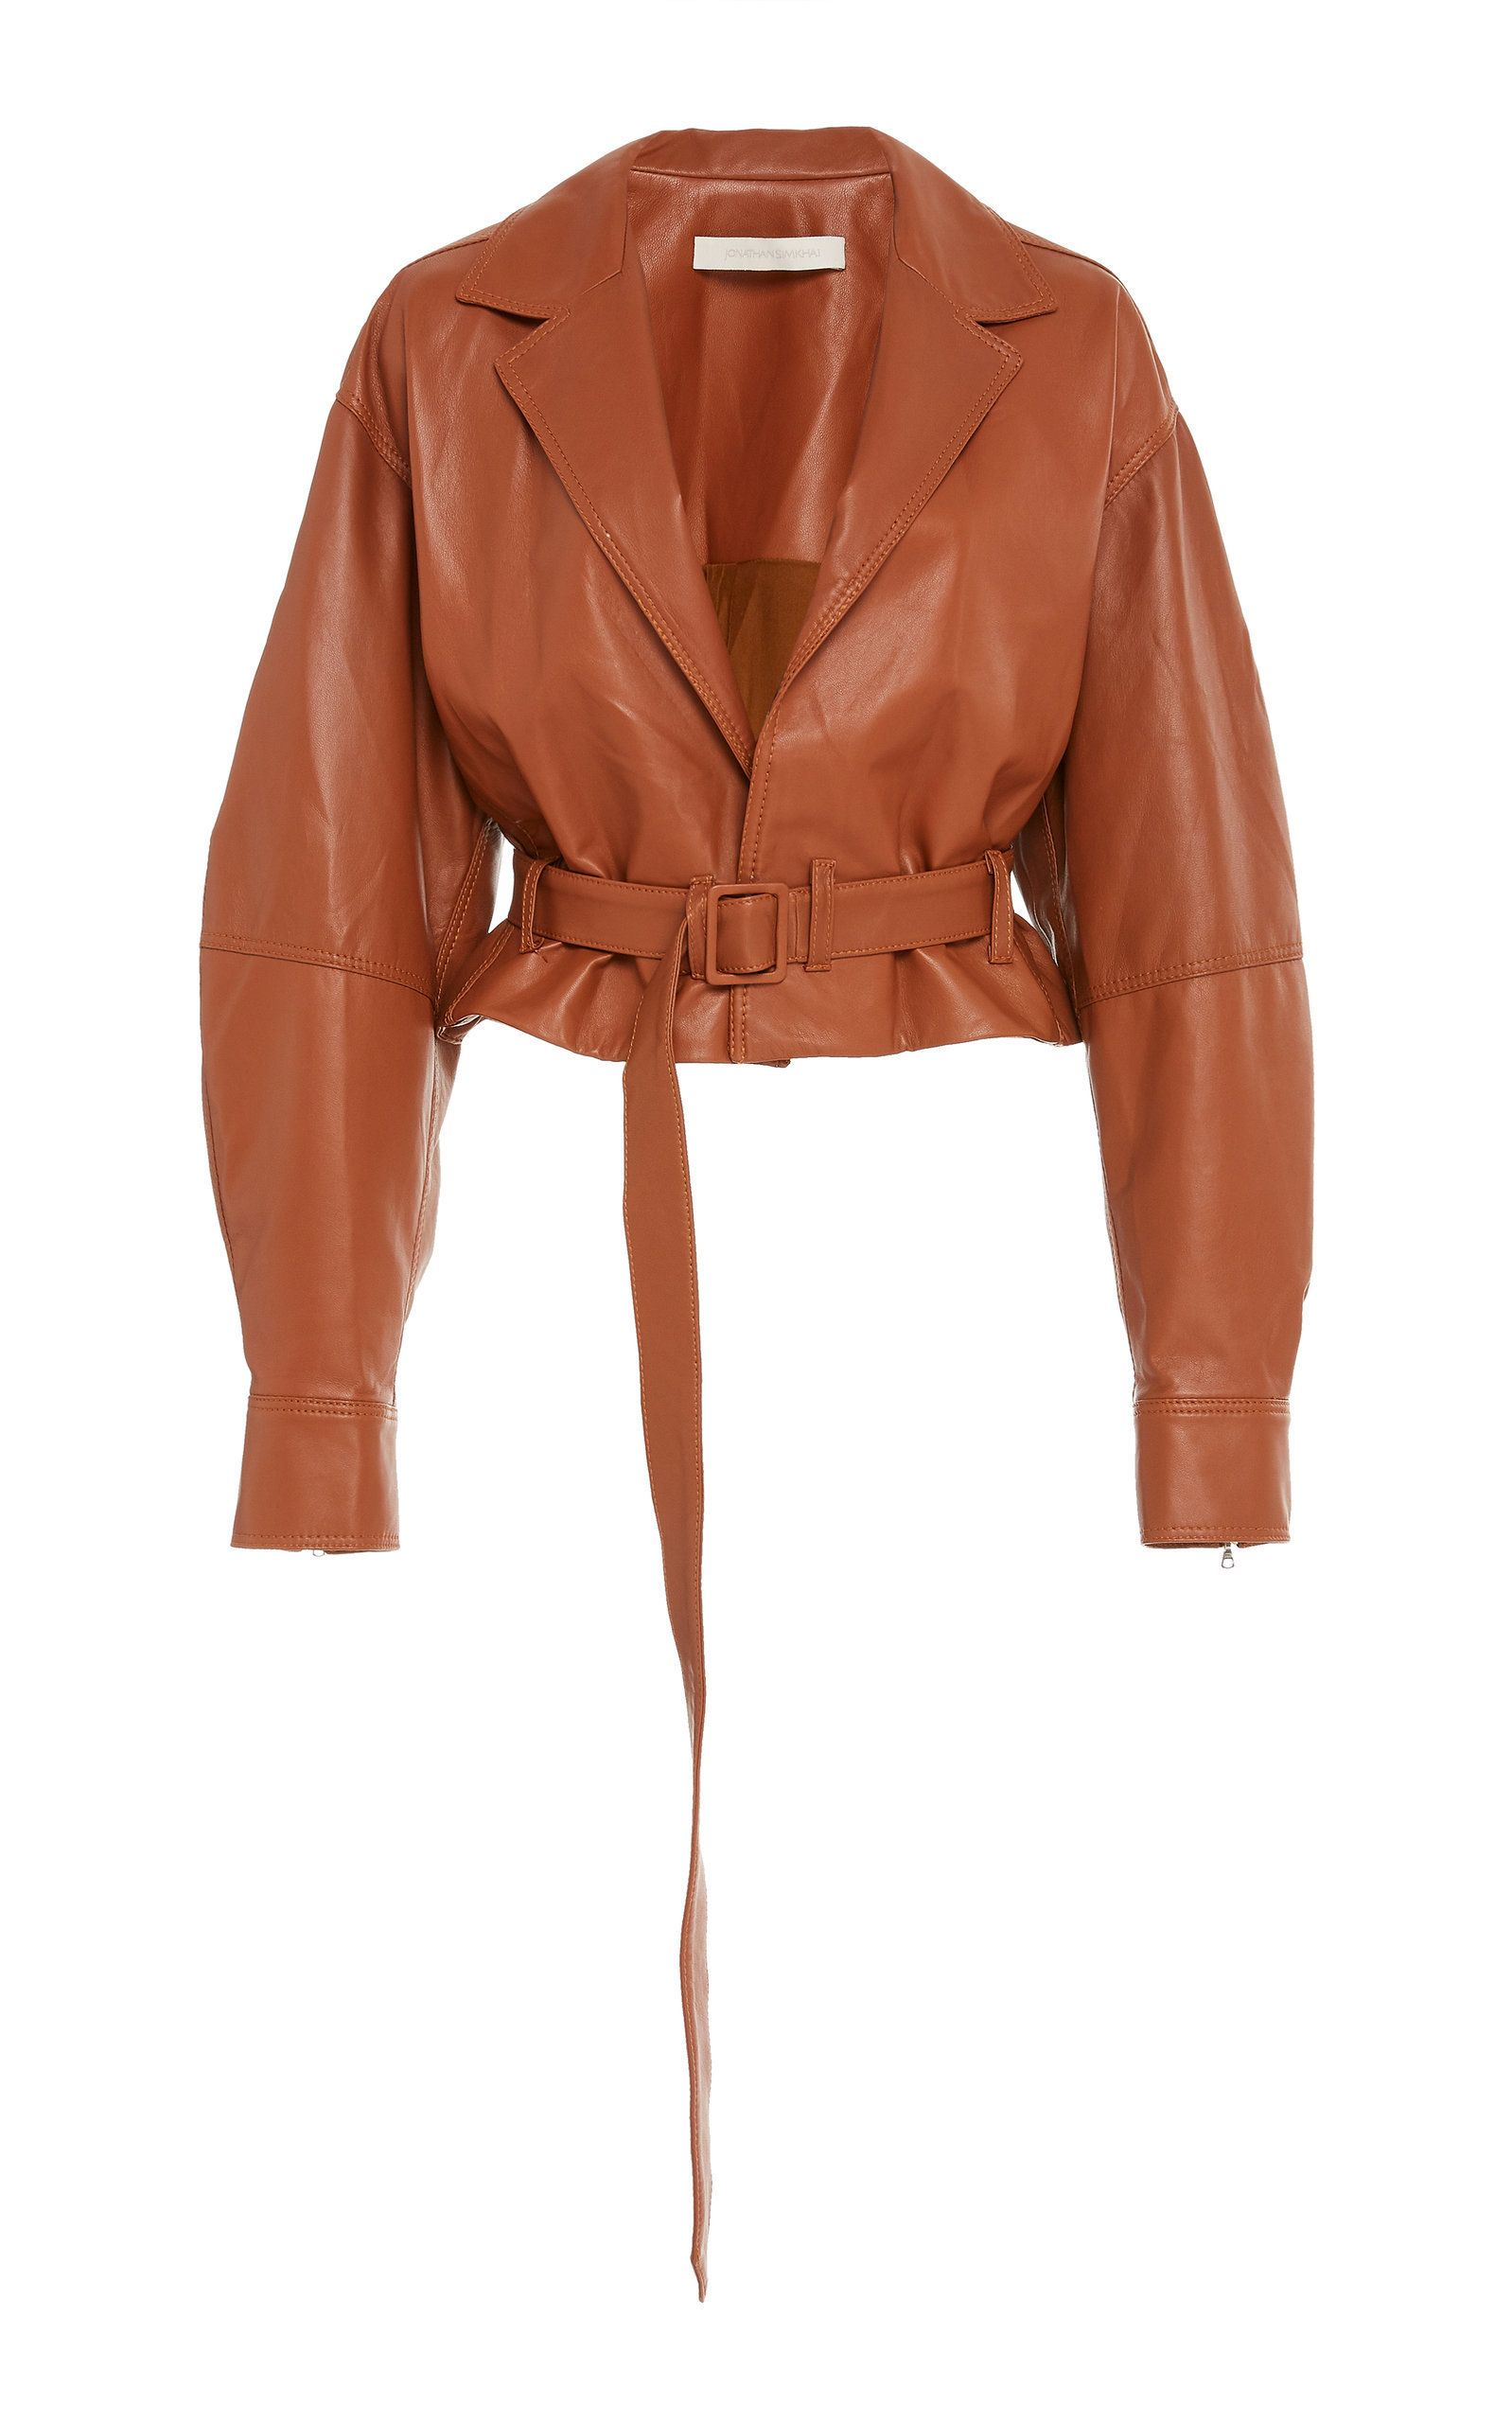 630ee9051 15 Best Leather Jackets For Women 2019 - Leather Jackets at Every Price  Point